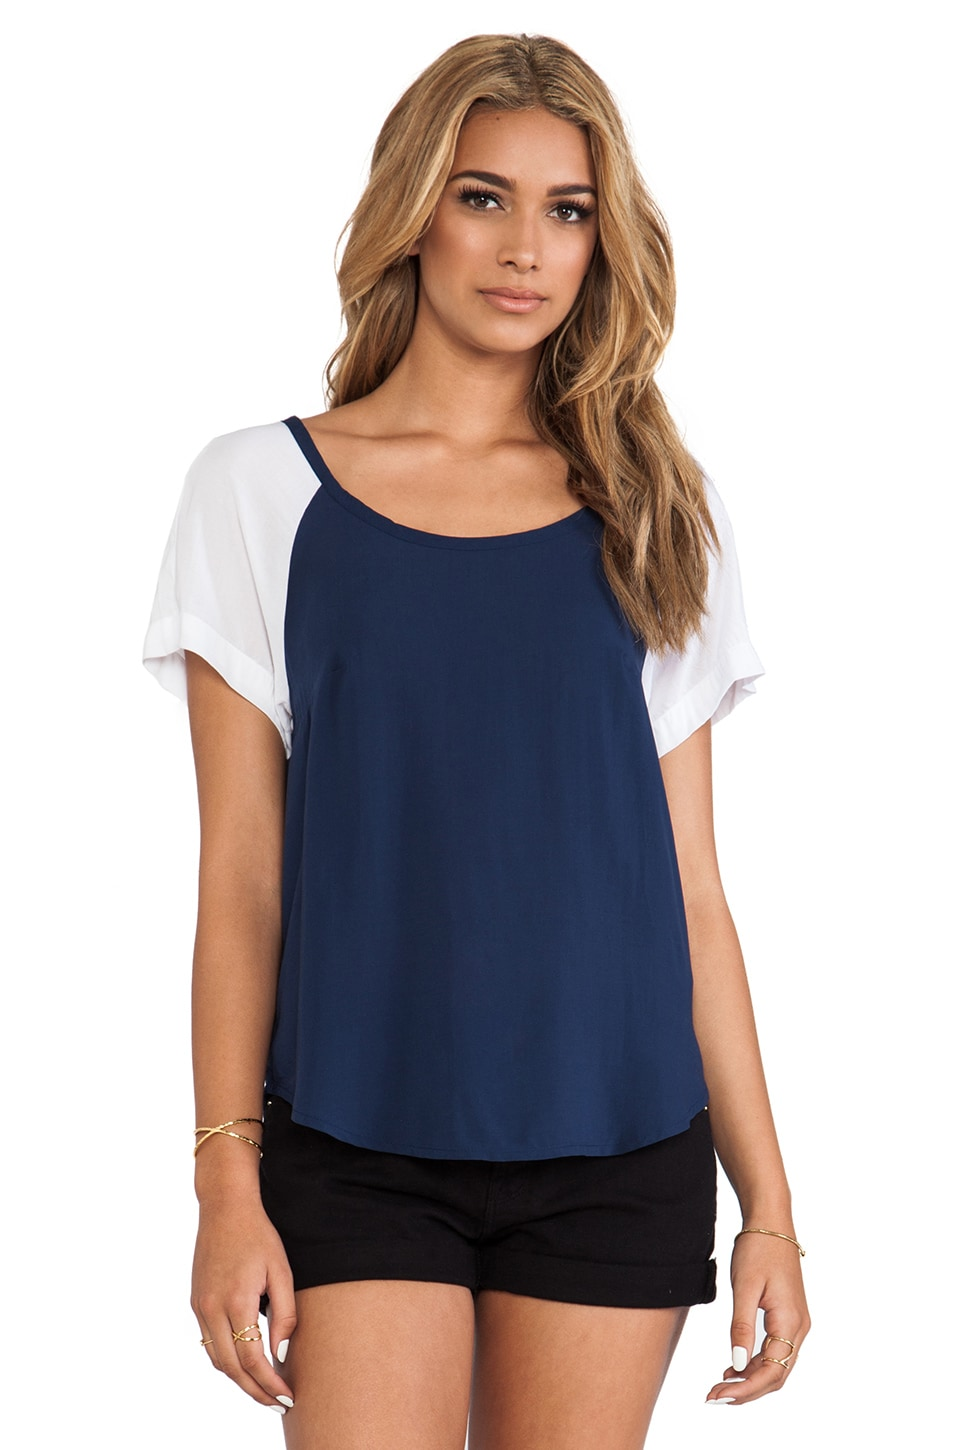 Splendid Color Blocked Shirt in Navy/White